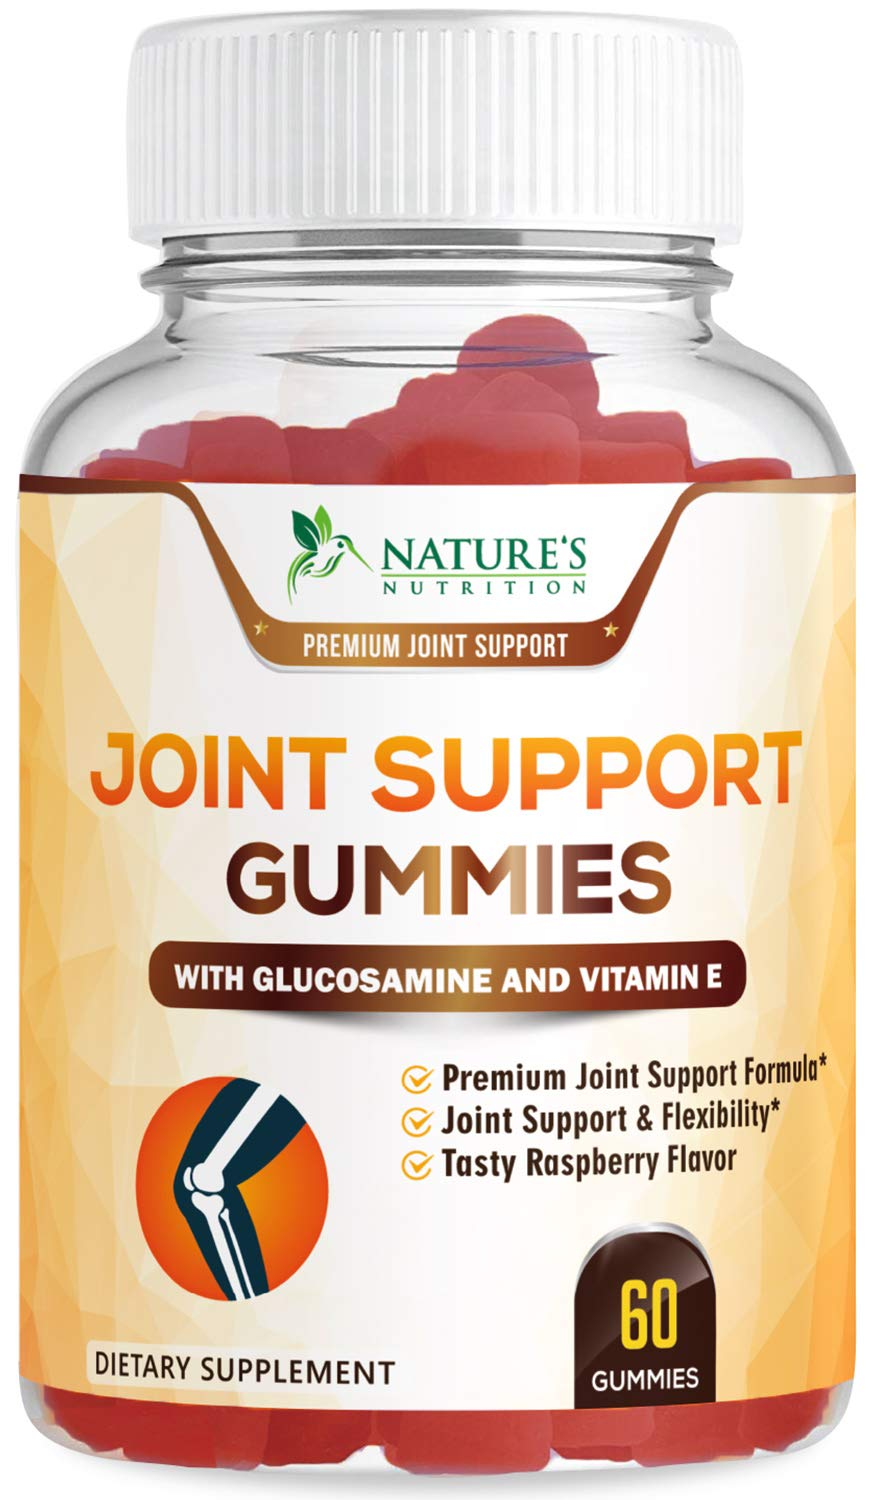 Joint Support Gummies Triple Strength Glucosamine & Vitamin E - Natural Joint Pain Relief Gummy - Made in USA - Best Vegan Anti Inflammatory & Immune Health Supplement for Men and Women - 60 Gummies